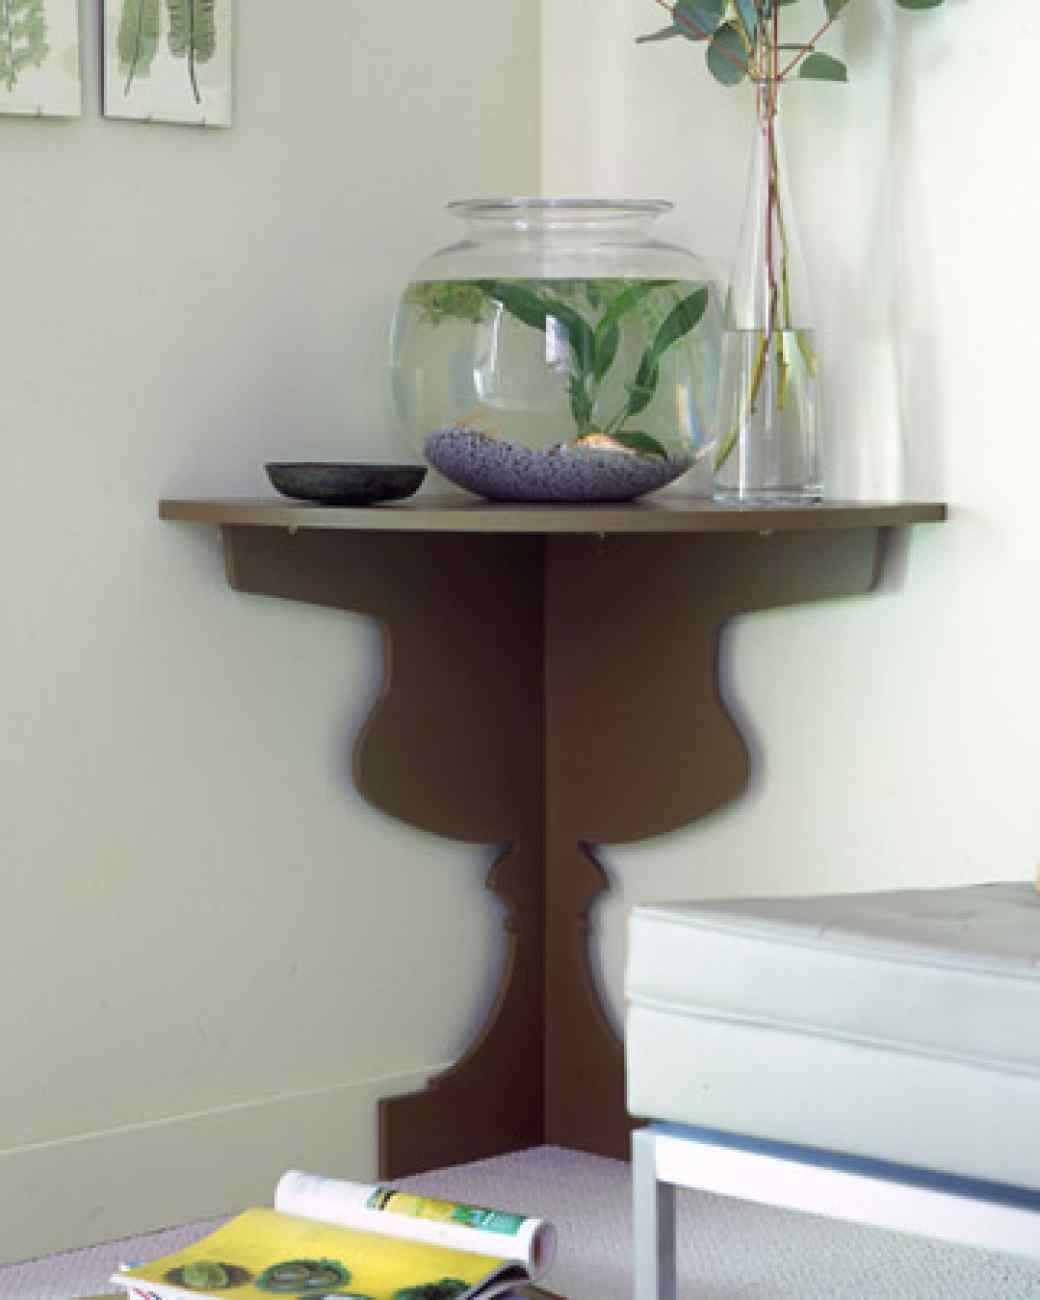 Small Crop Of Corner Shelf Hanging